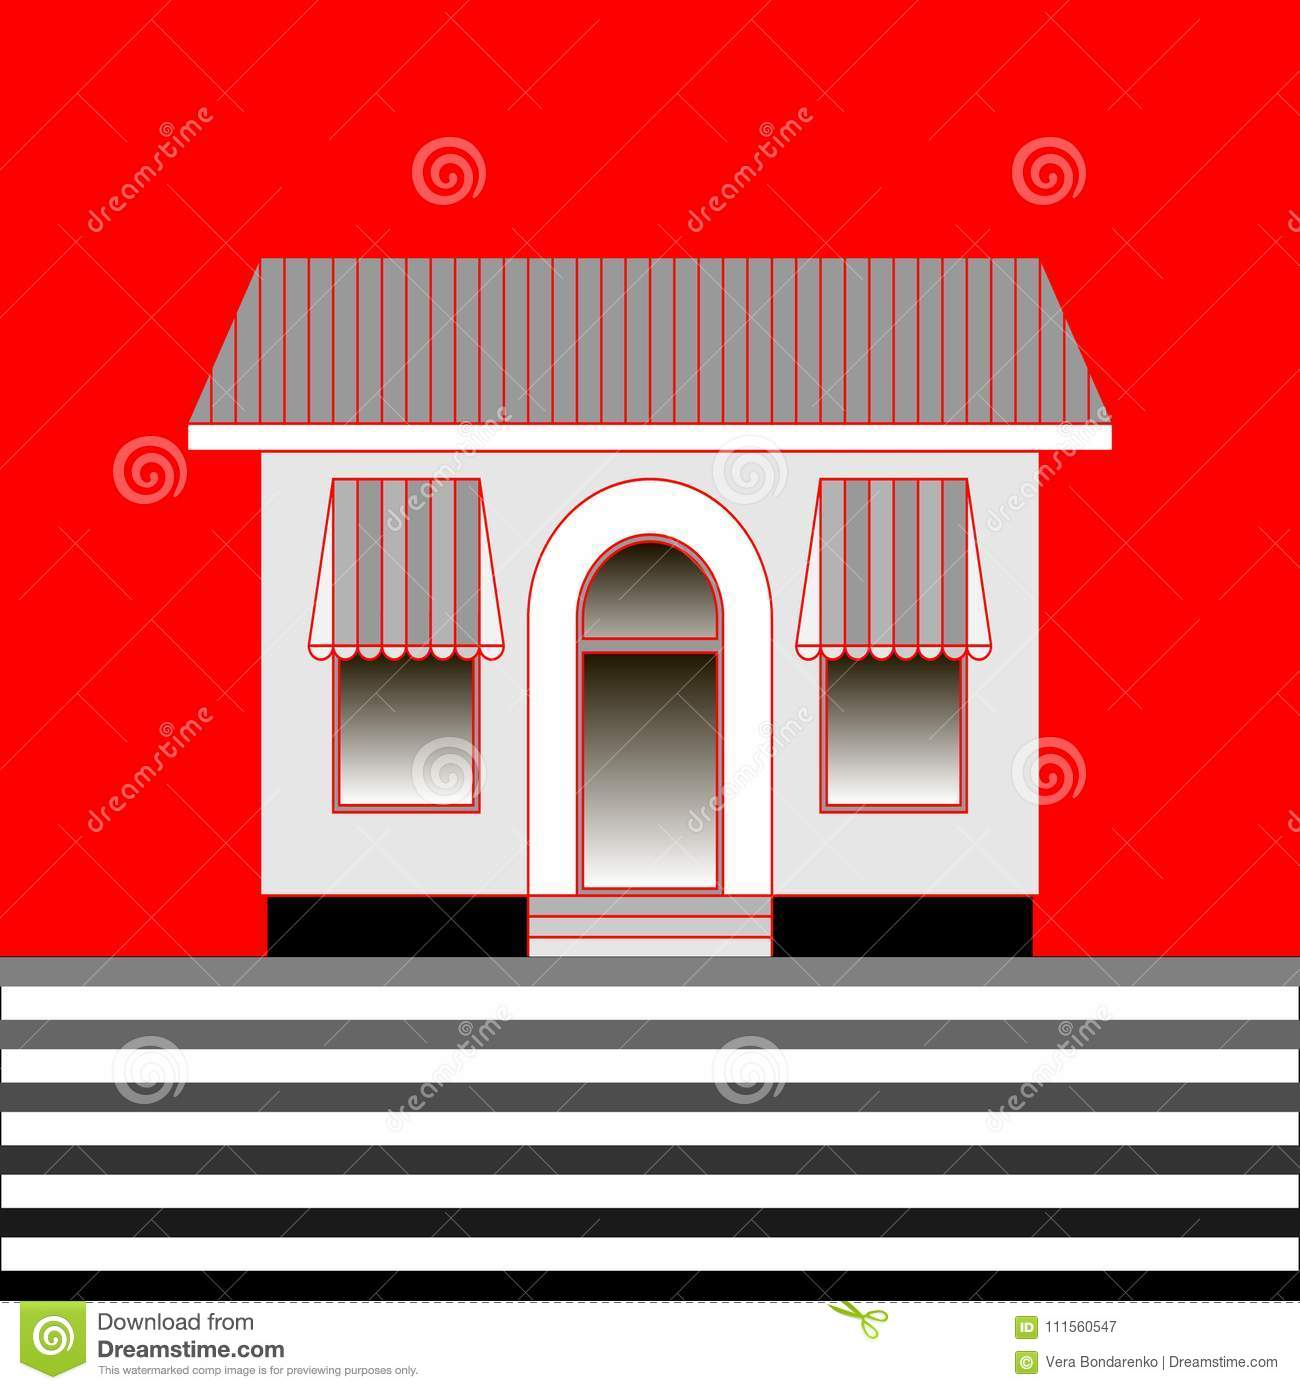 Cafe Or Shop With Transparent Windows With Awnings On Red Background